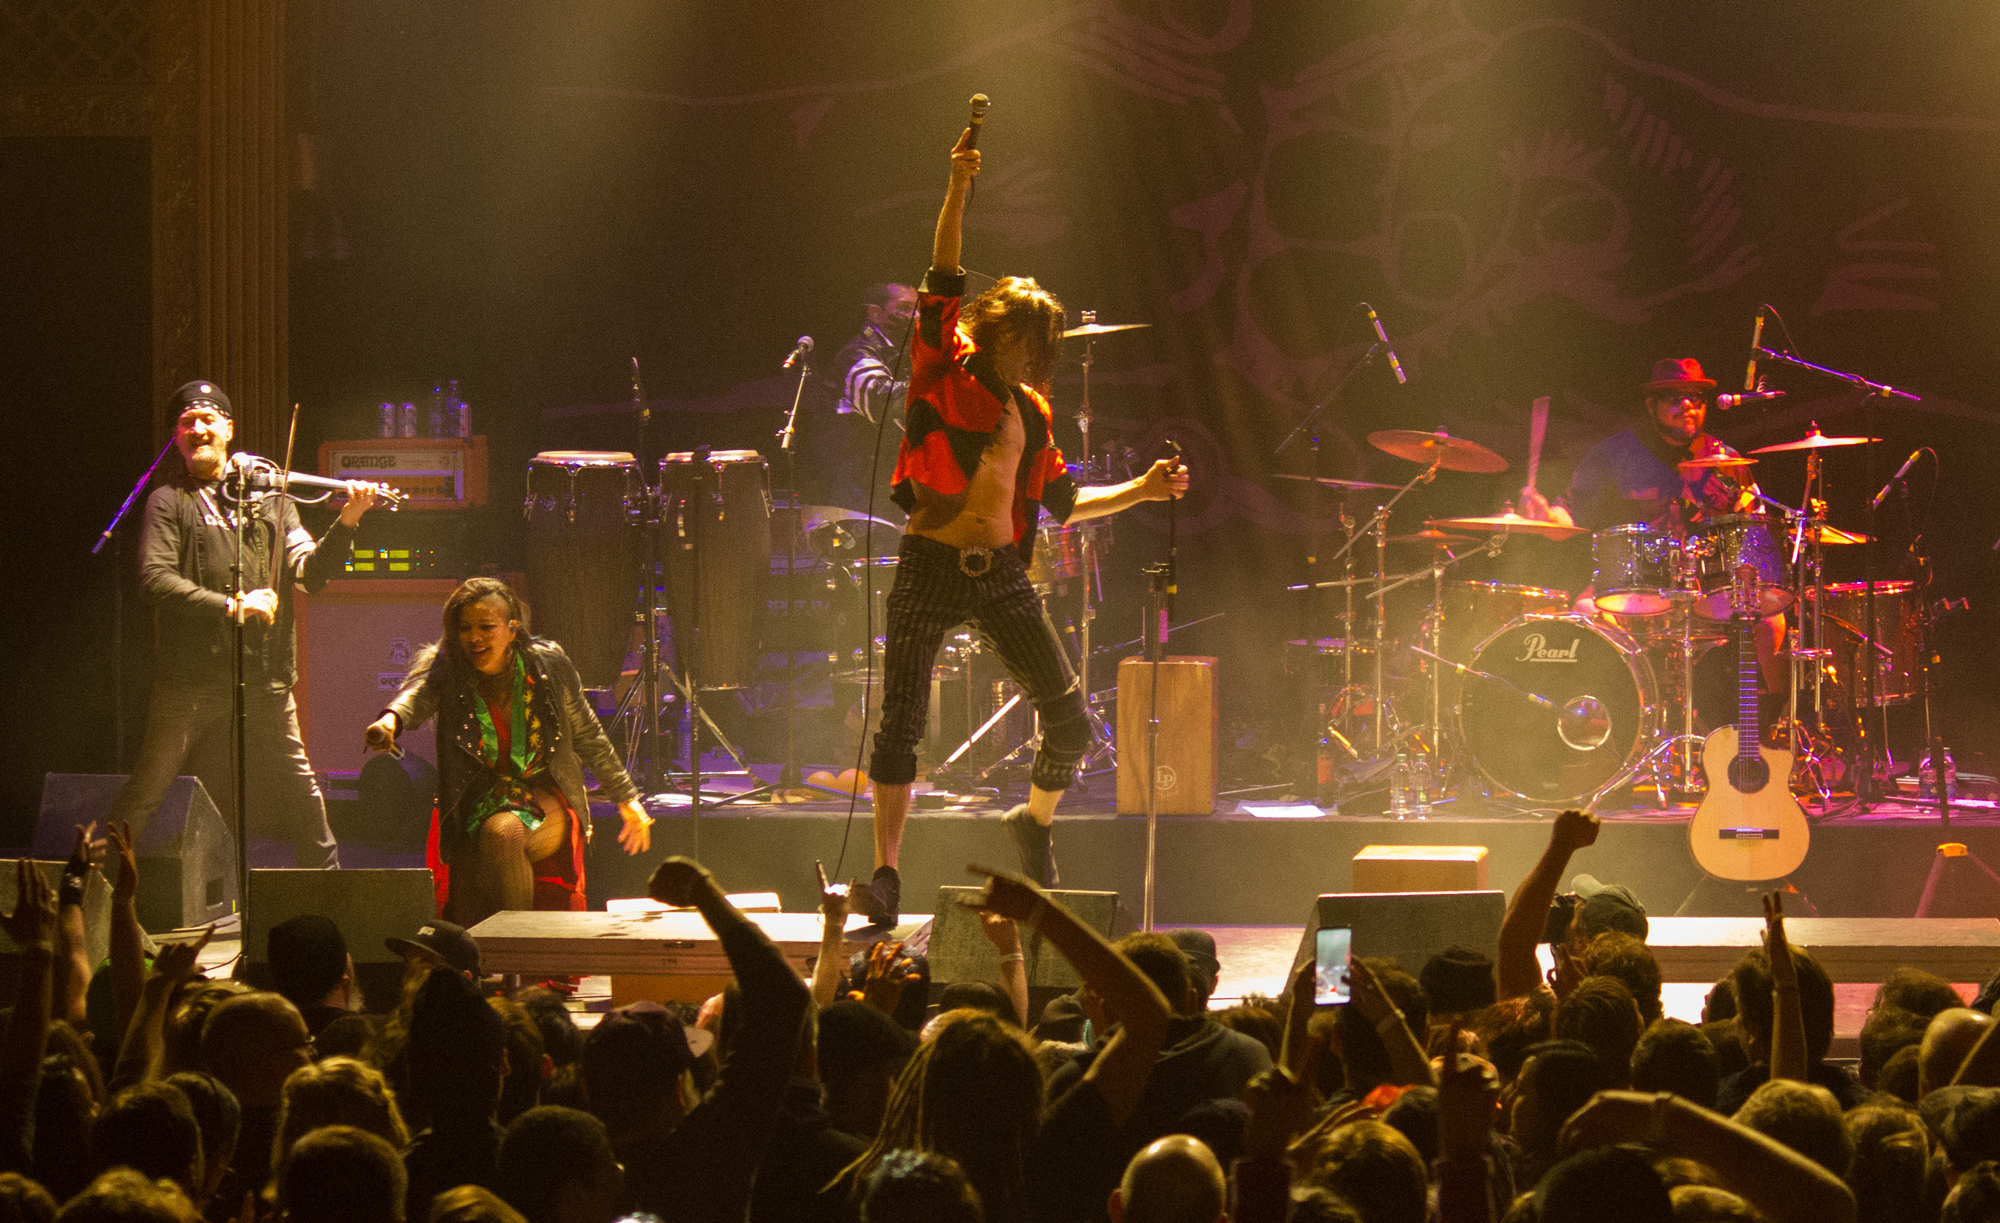 Gogol Bordello Brought the Ruckus to the Ogden Theatre During their NYE Tour in Colorado